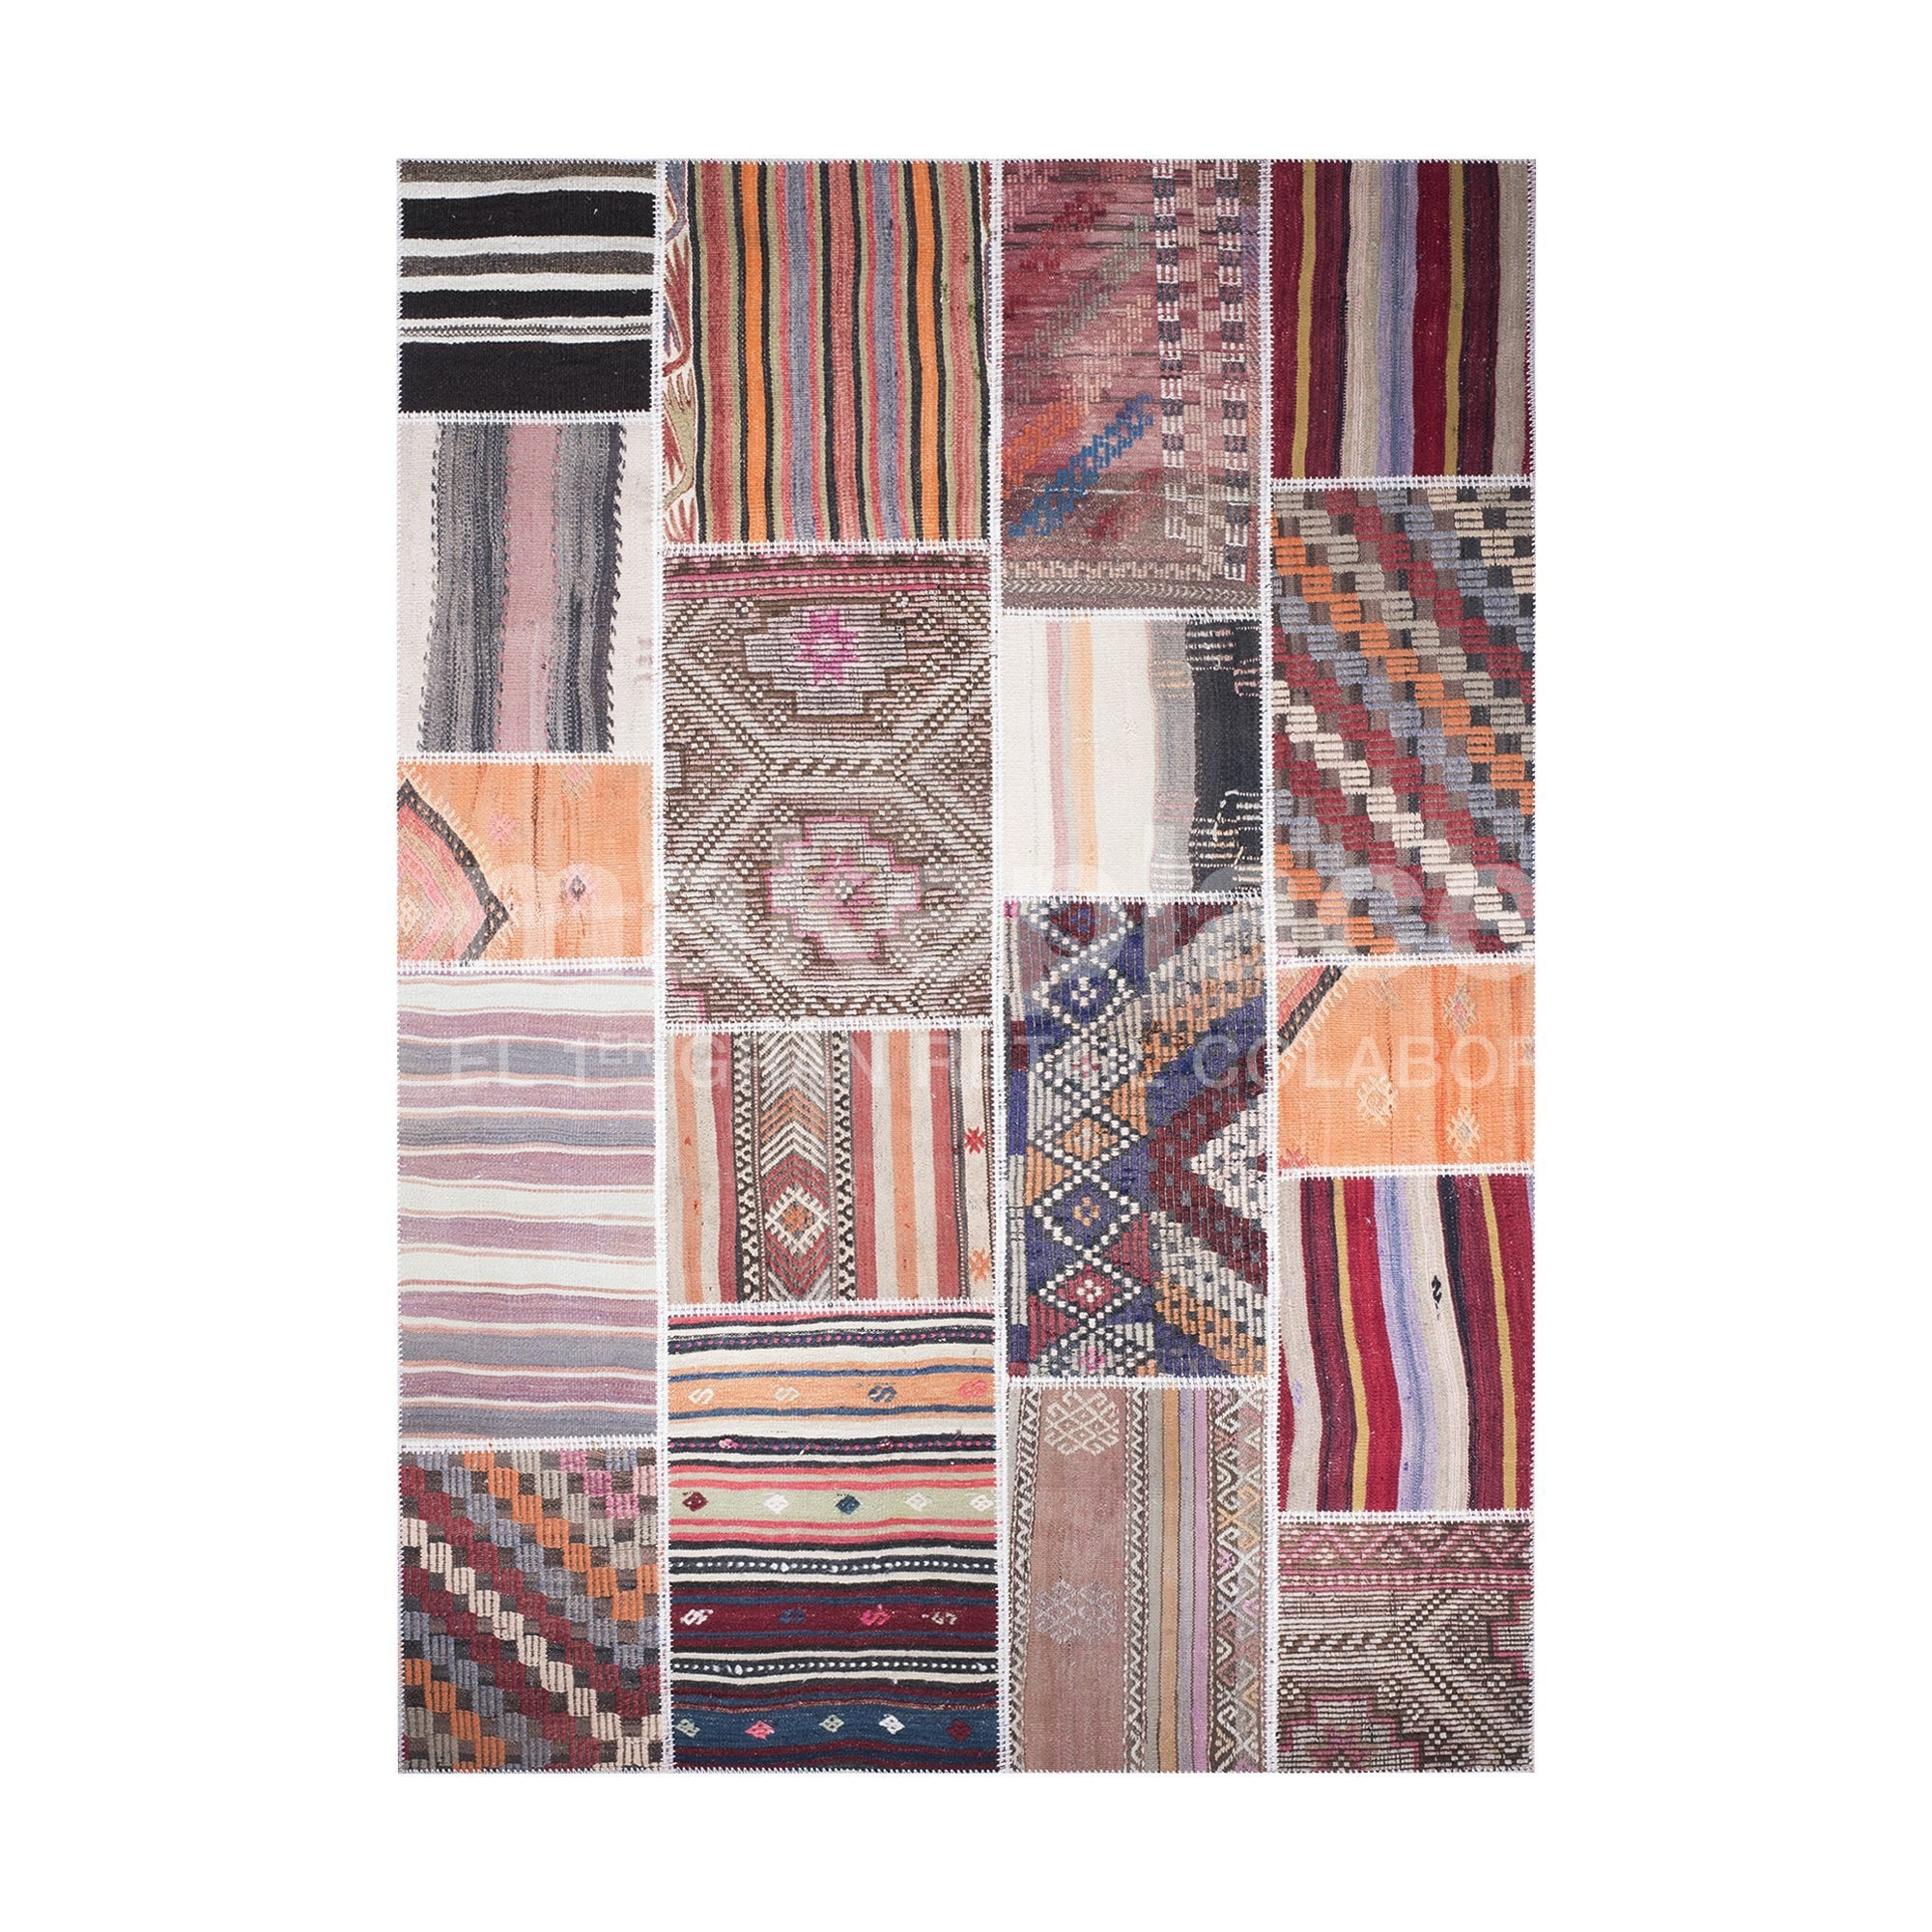 ALFOMBRA PATCHWORK TURCO 170X240 PASTEL K. CONTRA Makeplace